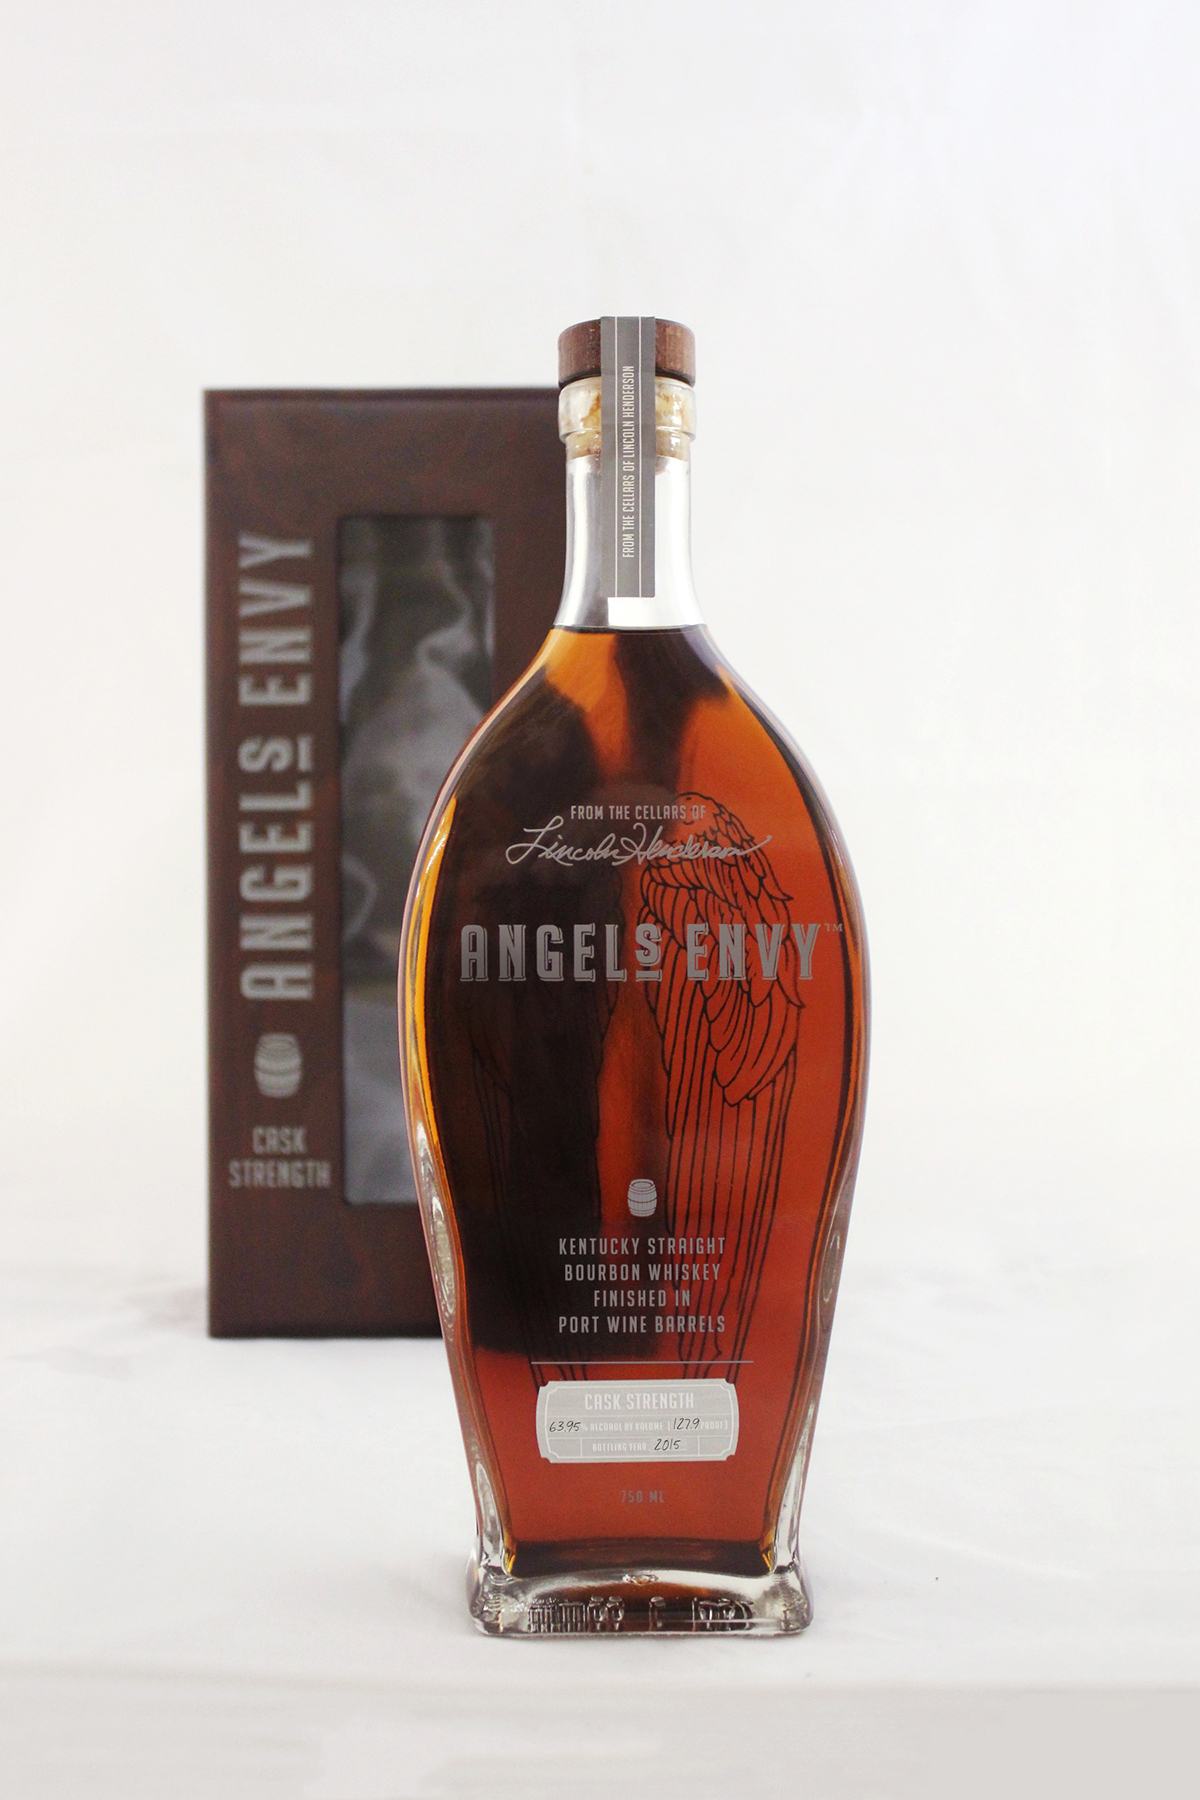 Angel's Envy Cask Strength Bourbon – Limited Edition (2015)